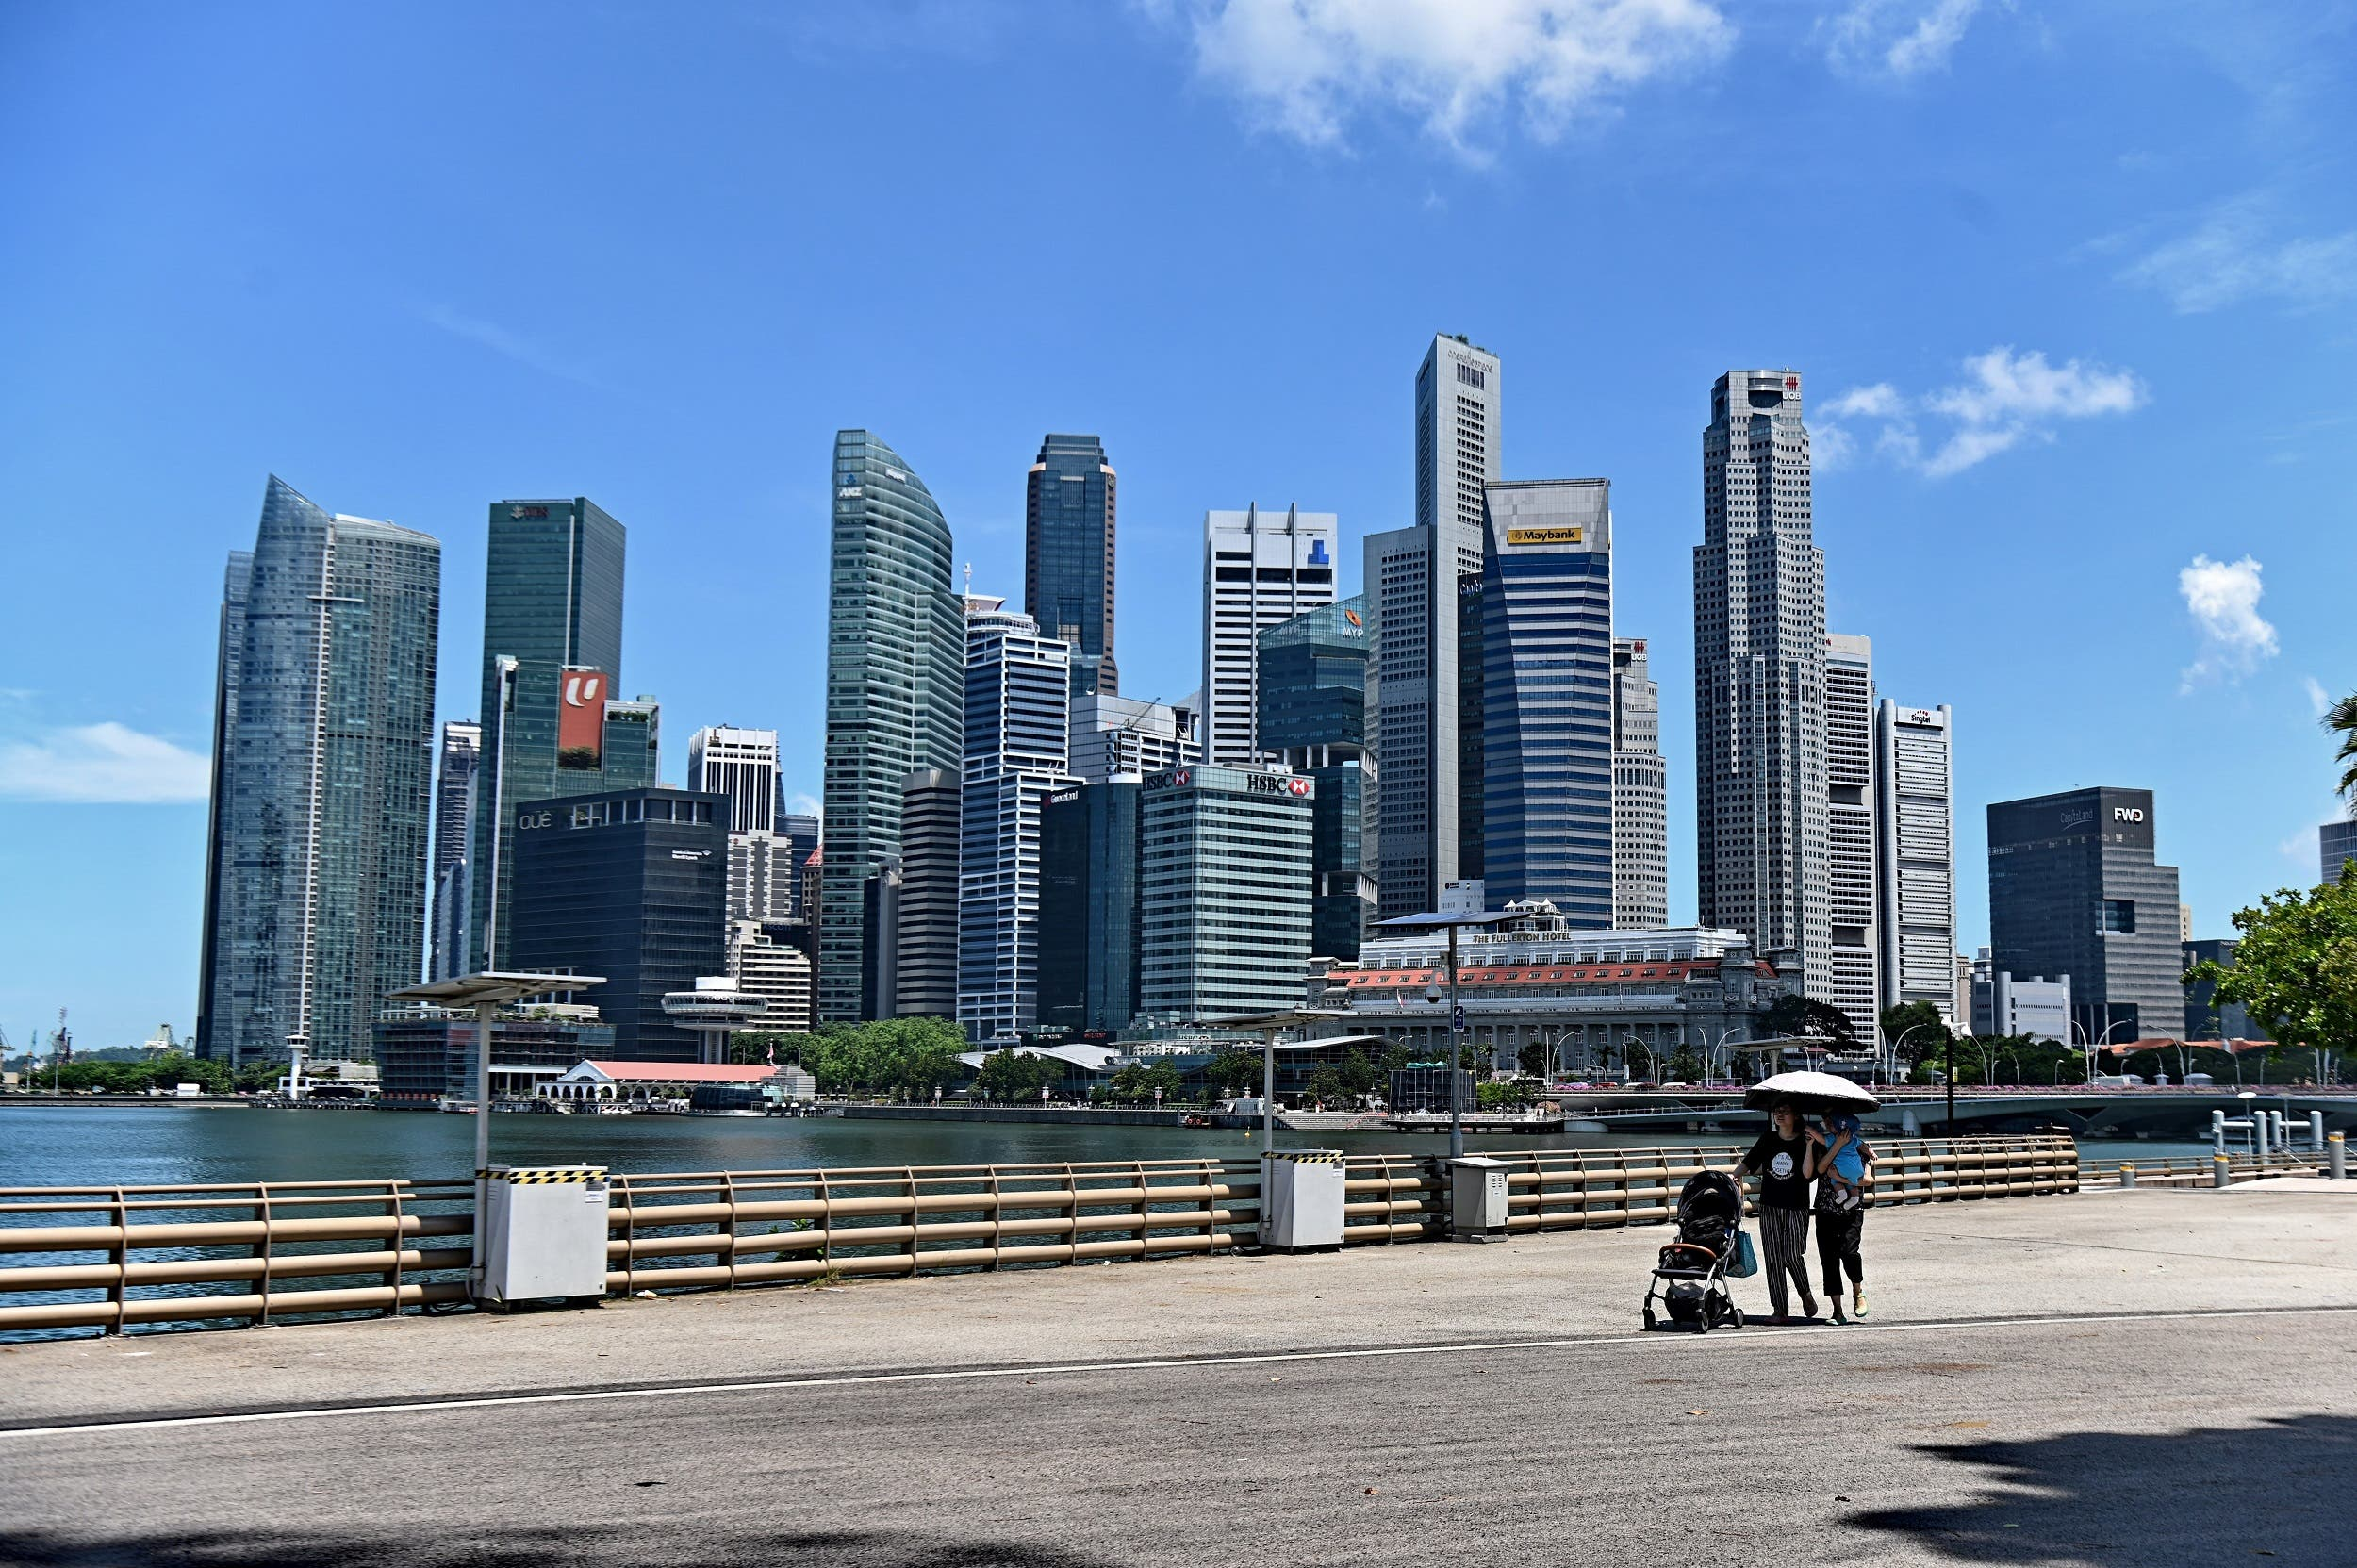 People walking near the central business district in Singapore on May 6, 2019. (AFP)